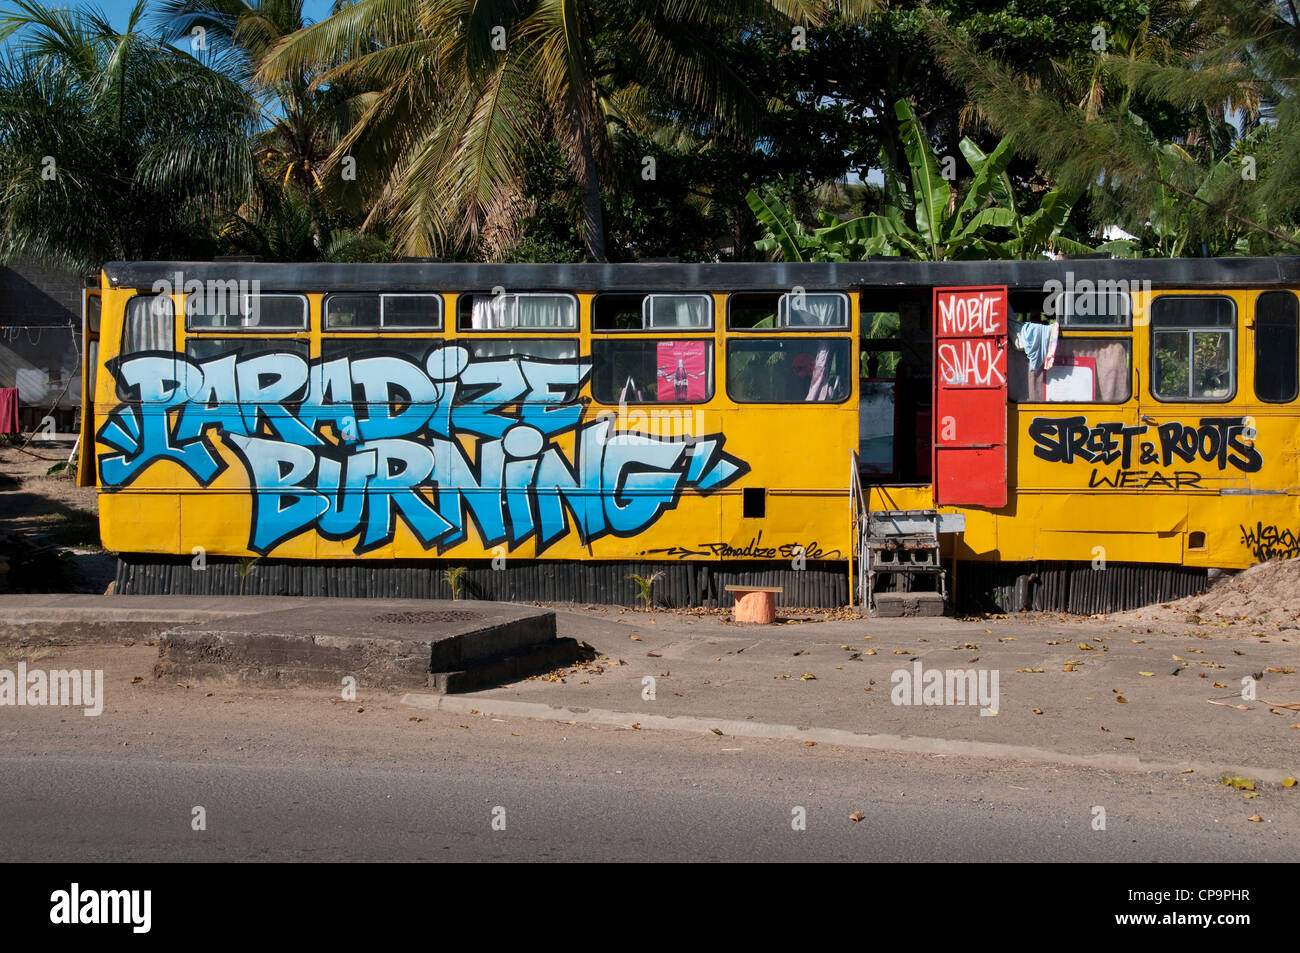 A mobile snack shop at Bel Ombre on the southwest of the island. - Stock Image